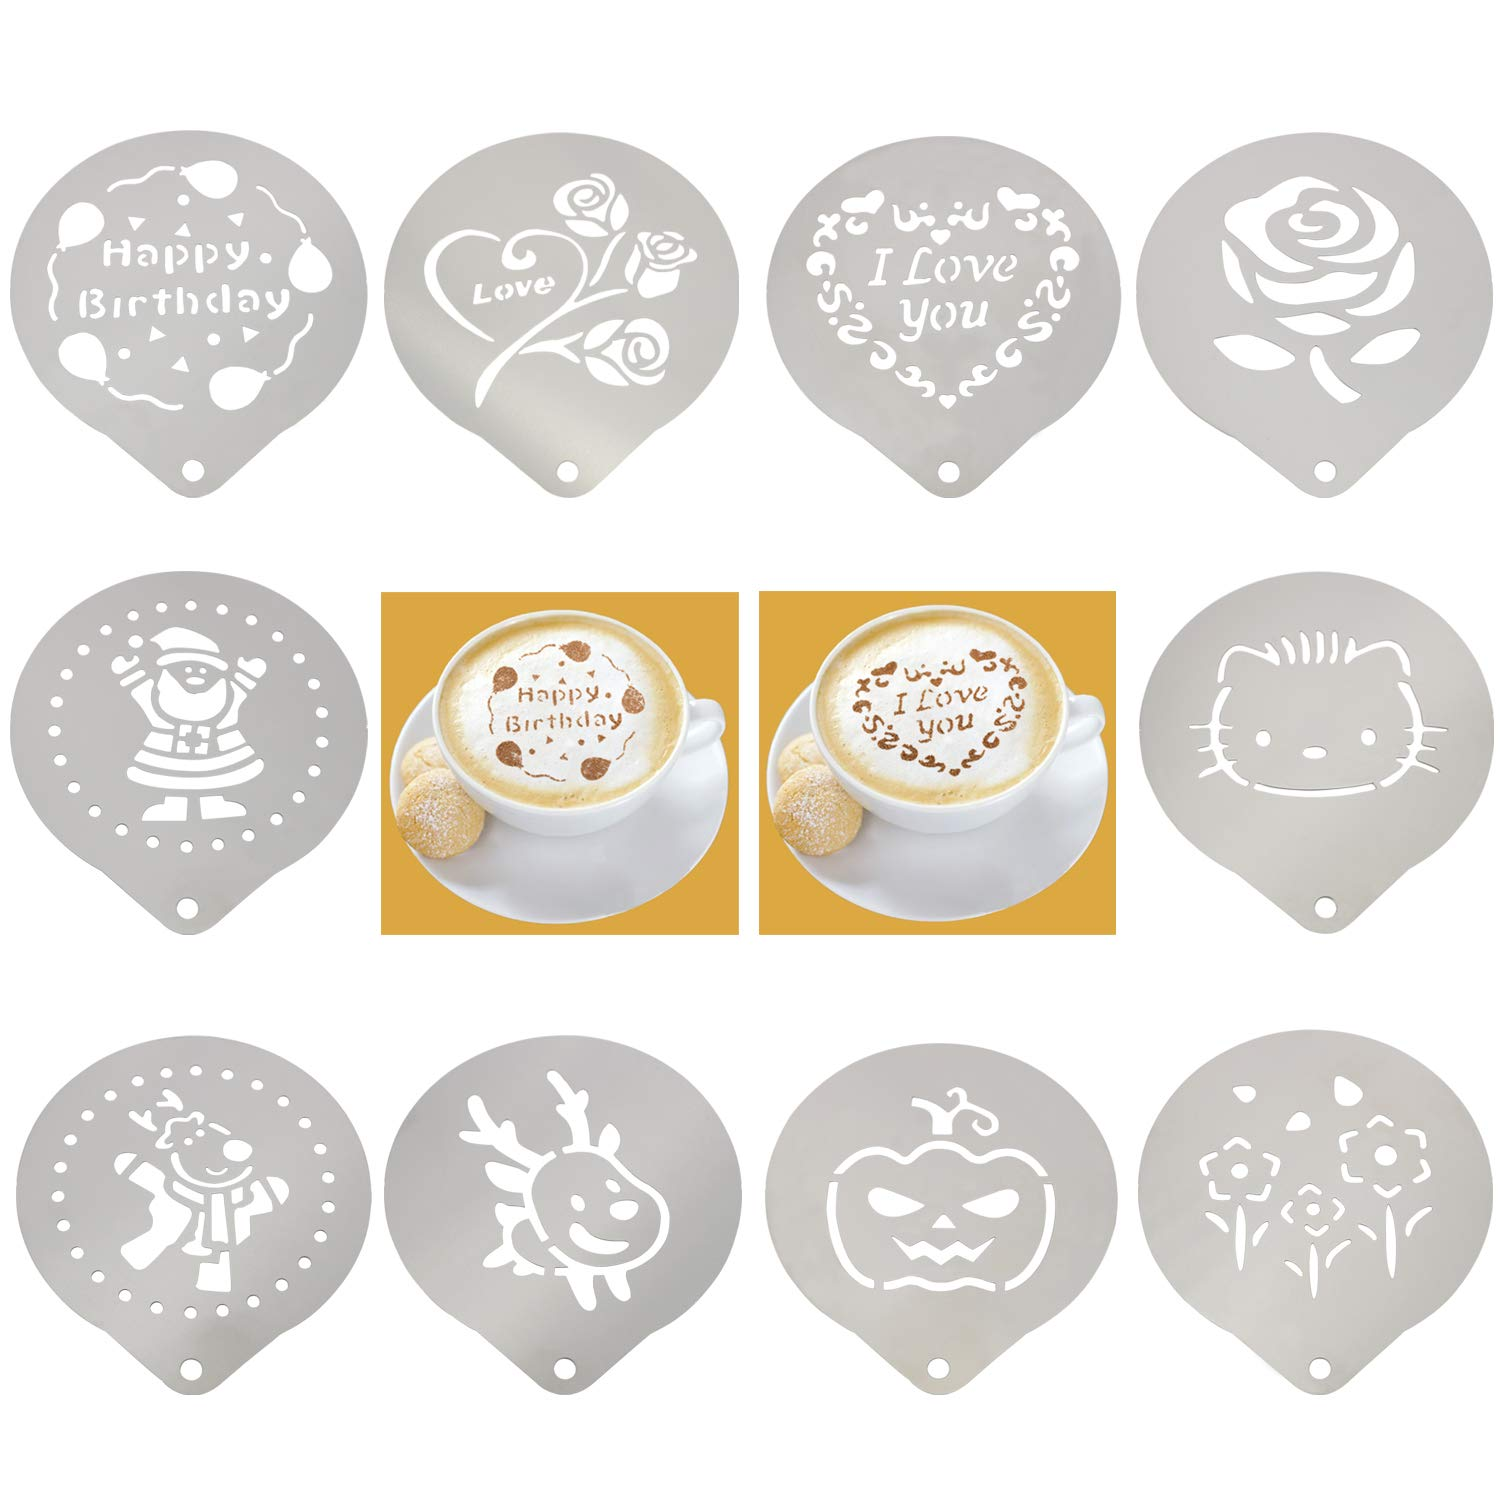 Coffee Art Stencils Stainless Steel Barista Stencil Design Template Decorating Cappuccino Latte Cookie Cupcake Bread Cocktail - 10 Pack by LOOGI